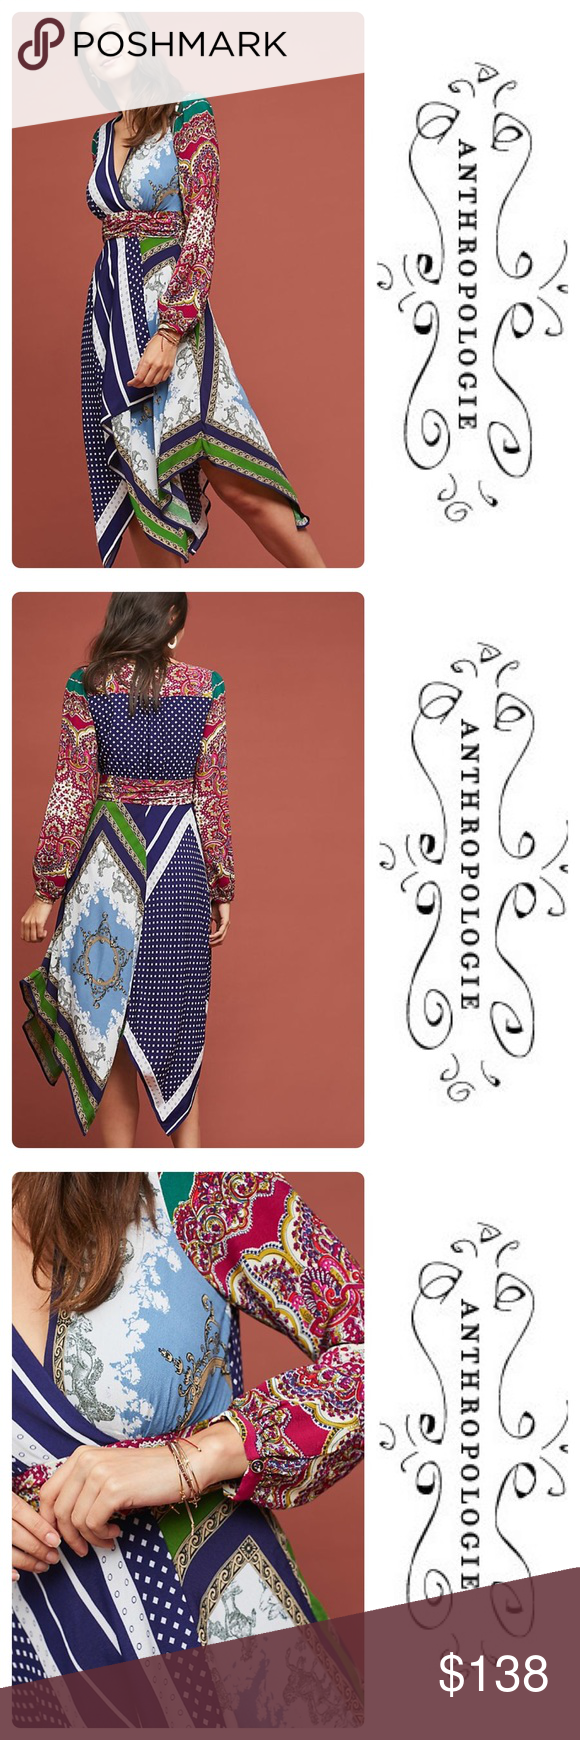 5858ae7ae894c New Anthropologie Istanbul Wrap Dress Navy First popularized by Versace in  the '80s, ornate and colorful scarf prints - like the one on this dress -  are an ...